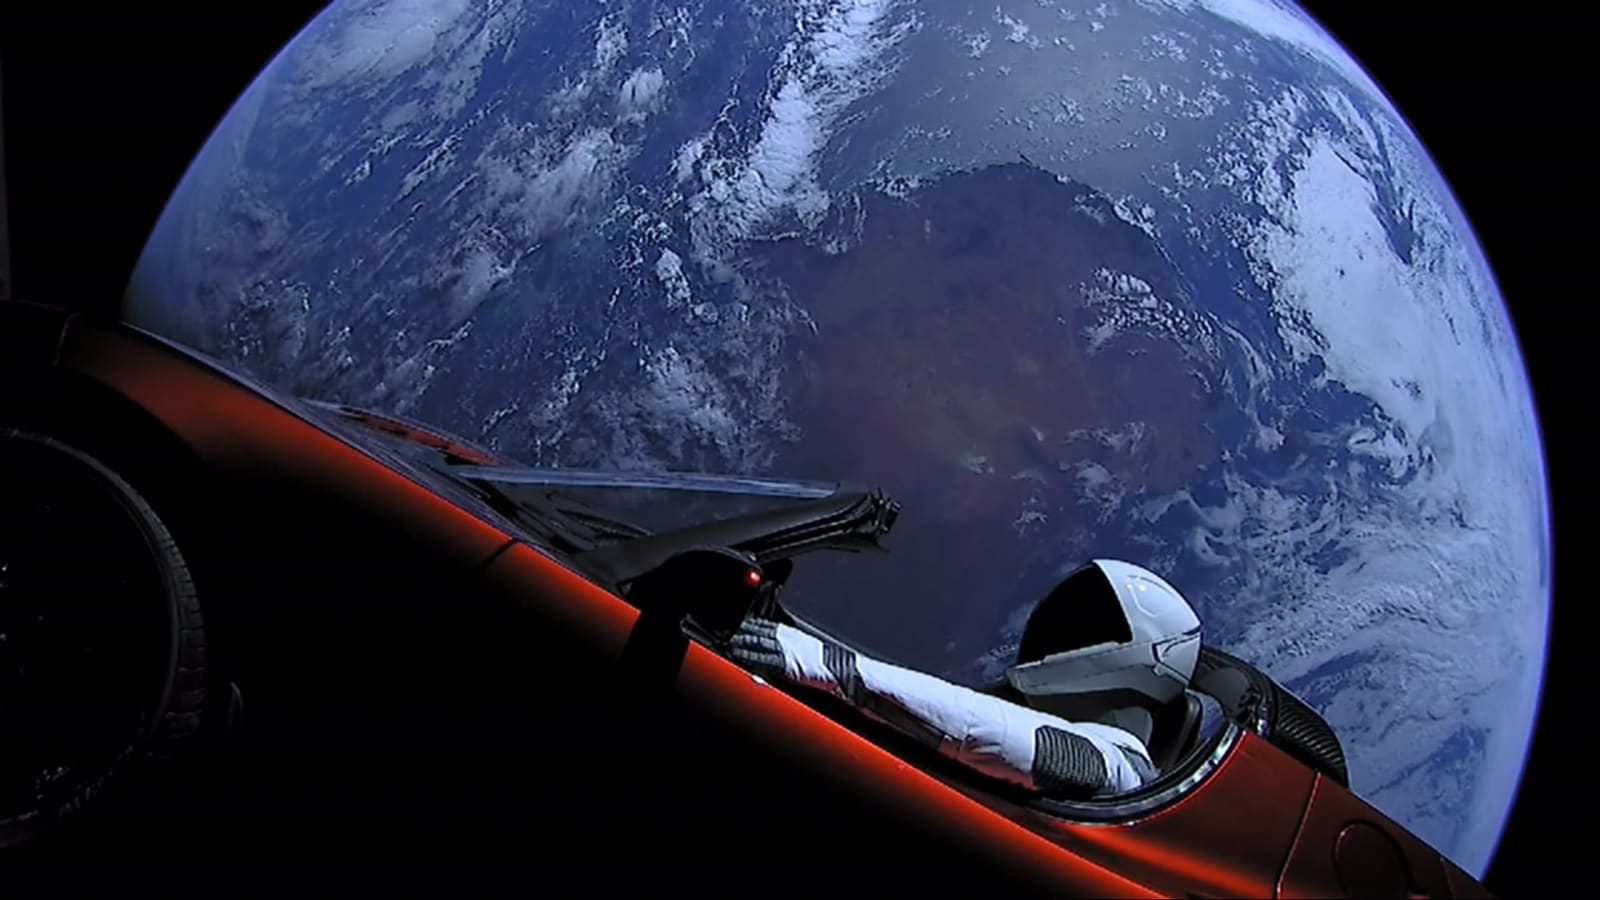 Elon Musk's Tesla Roadster bound for asteroid belt after Falcon Heavy launch